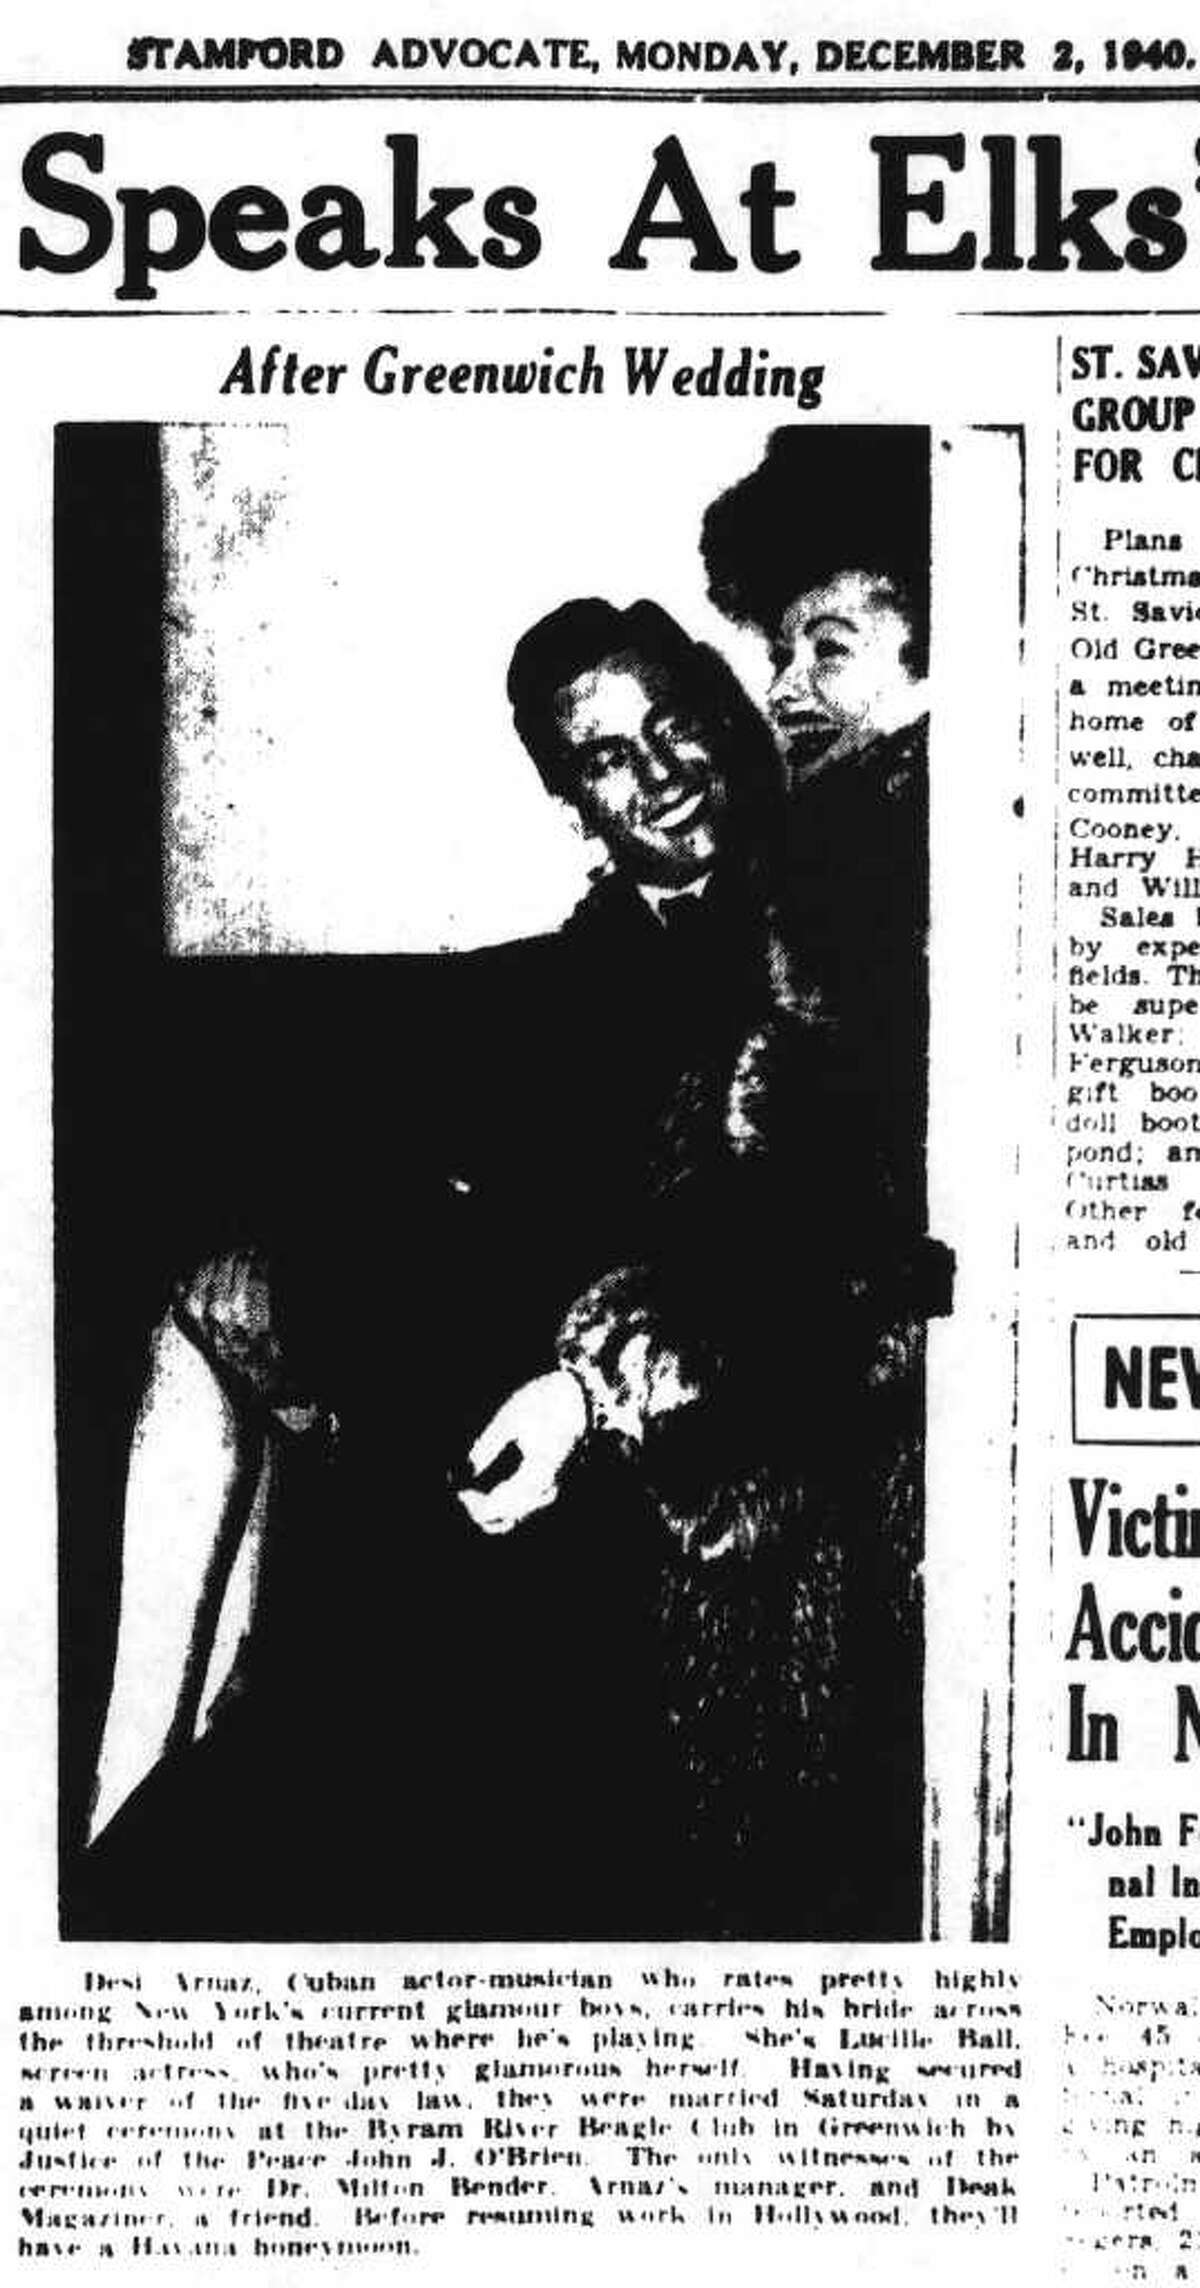 The Dec. 2, 1940 edition of the Stamford Advocate includes a photograph of Desi Arnaz and Lucille Ball after their Nov. 30 wedding at the Byram River Beagle Club in Greenwich. According to the caption, they planned a Havana honeymoon.